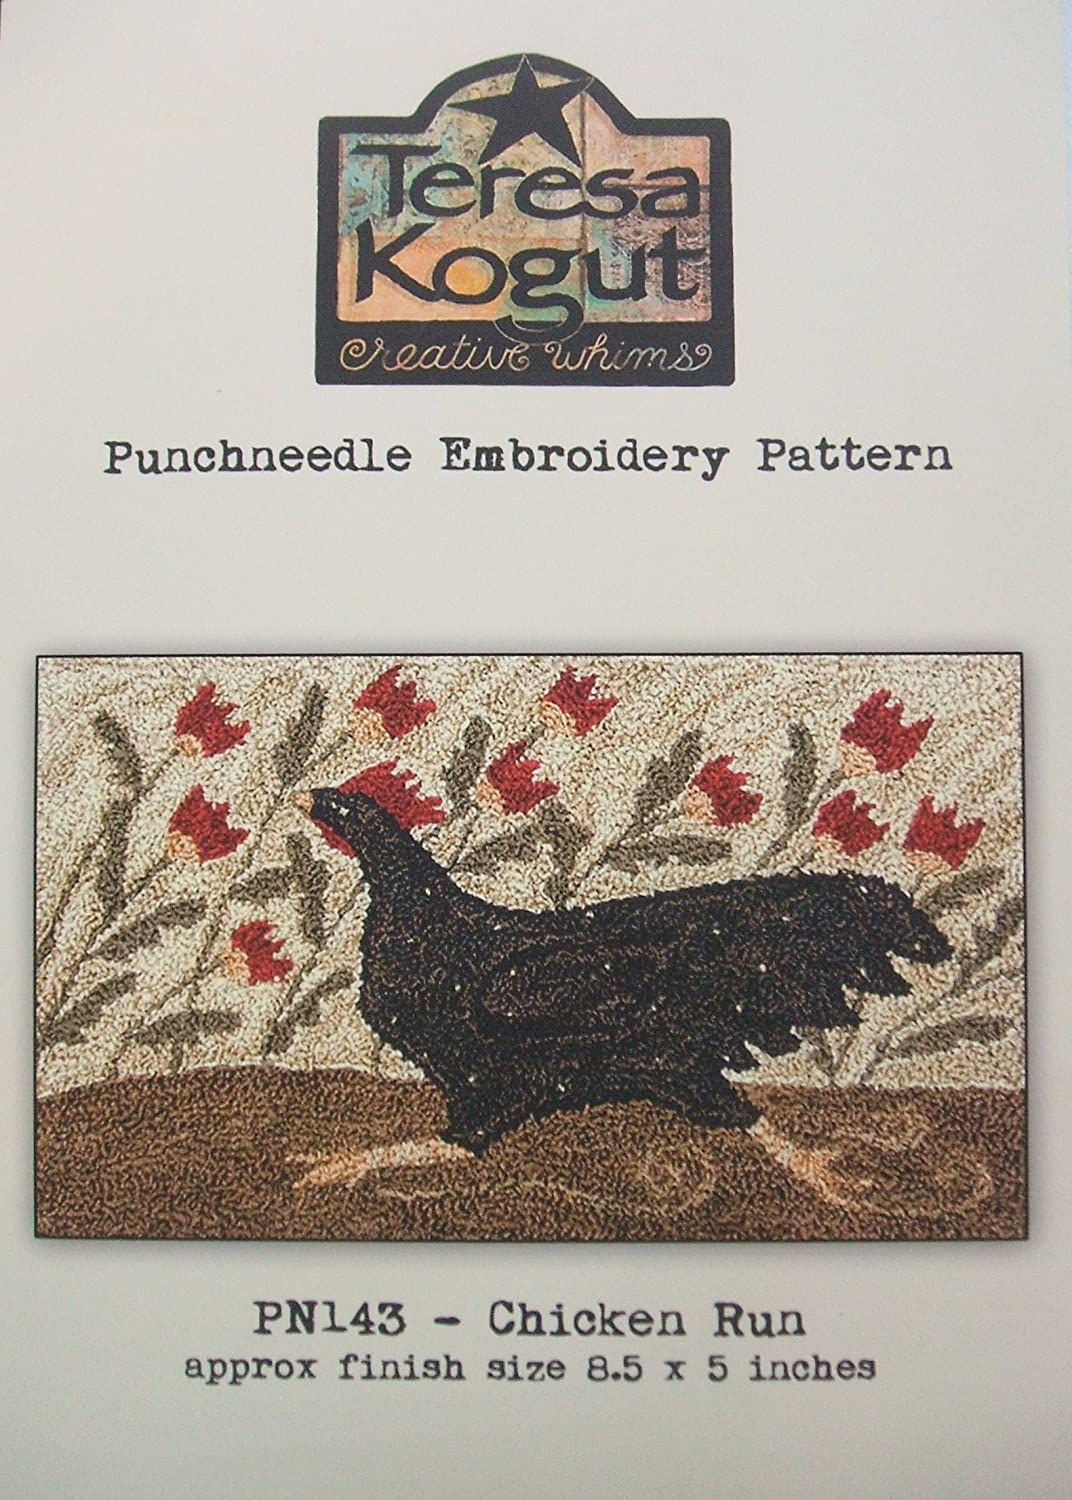 Chicken Run Punchneedle Punch Needle Embroidery Teresa Kogut Pattern PN143